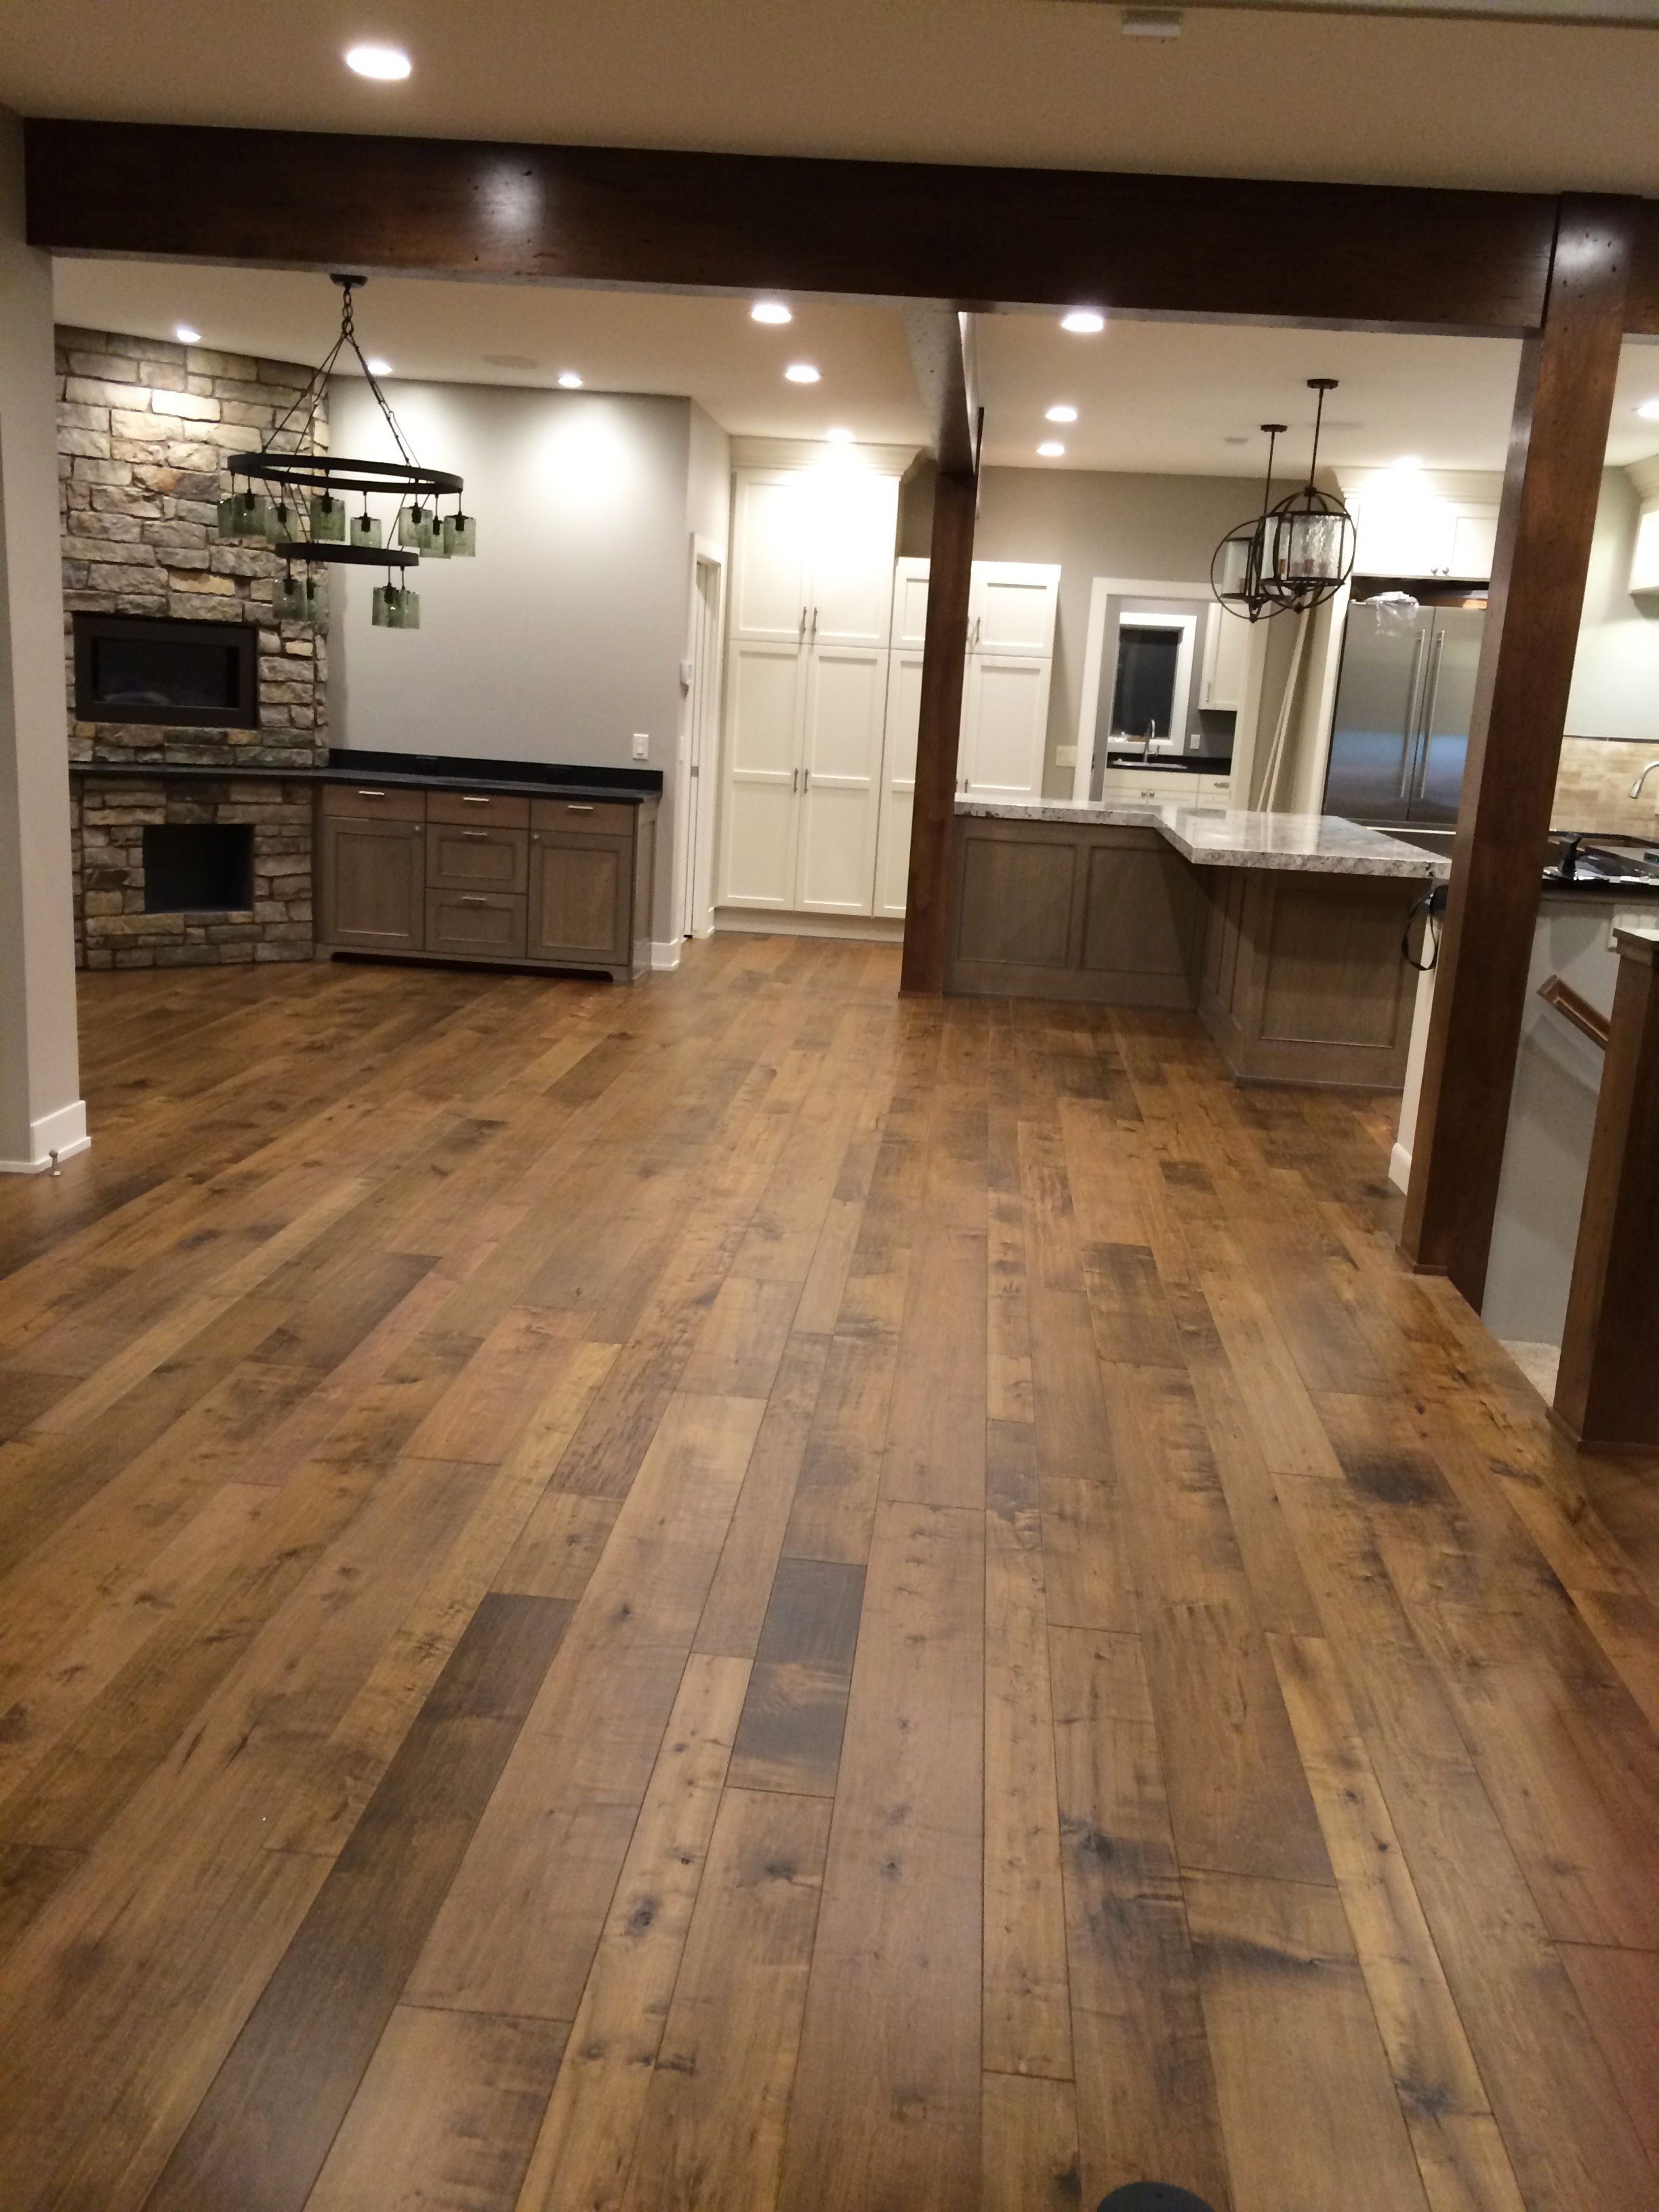 Procedure for sanding hardwood floors